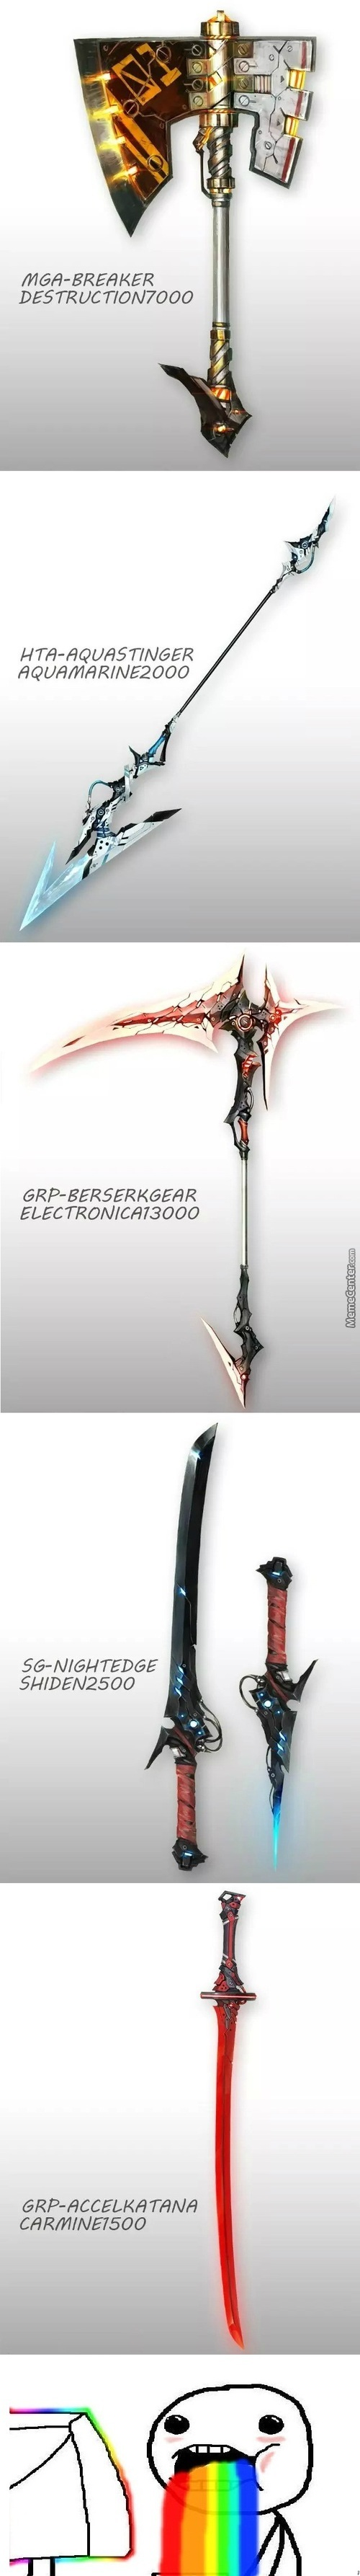 Some Really Awesome Weapons In Real Life